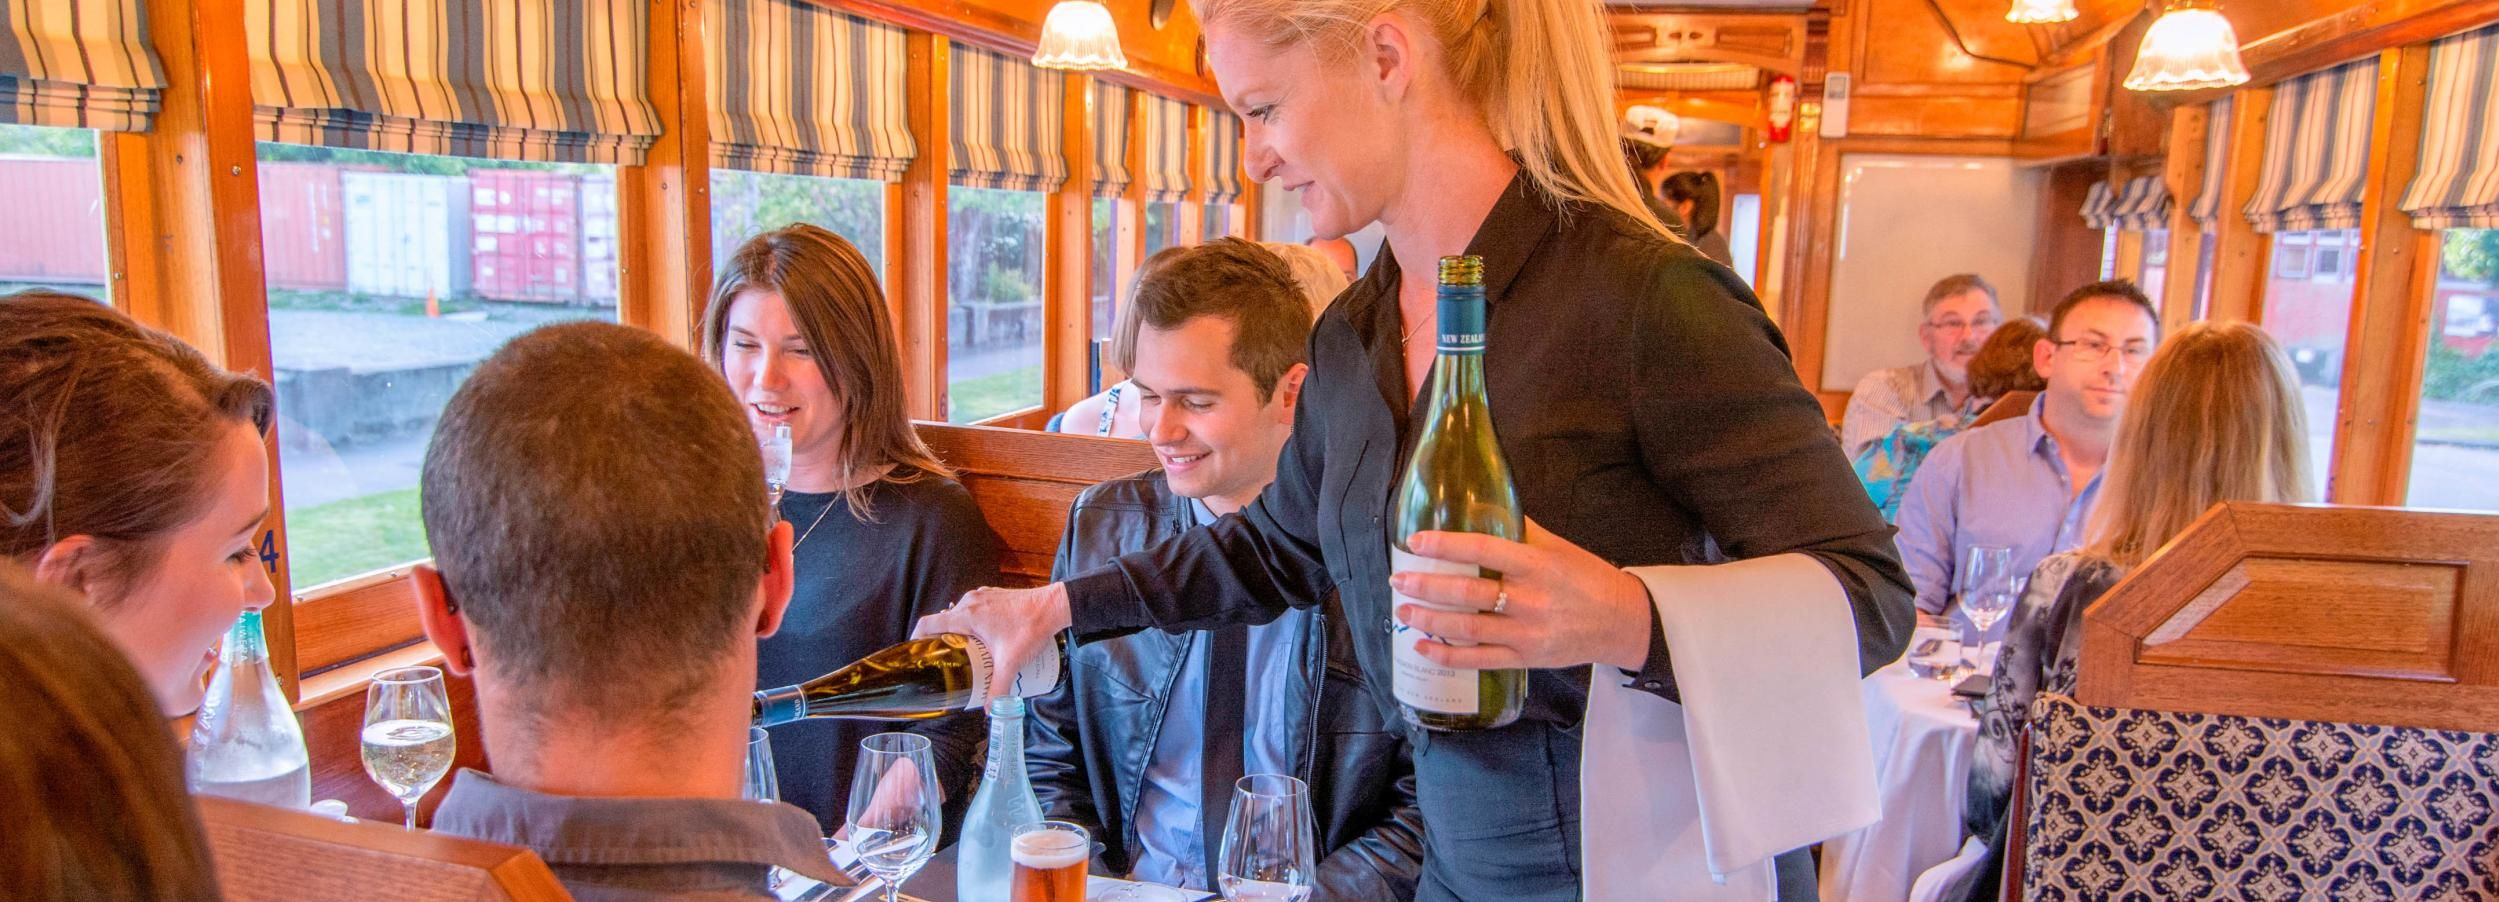 Christchurch Tramway Restaurant 4 Course Dinner Tour